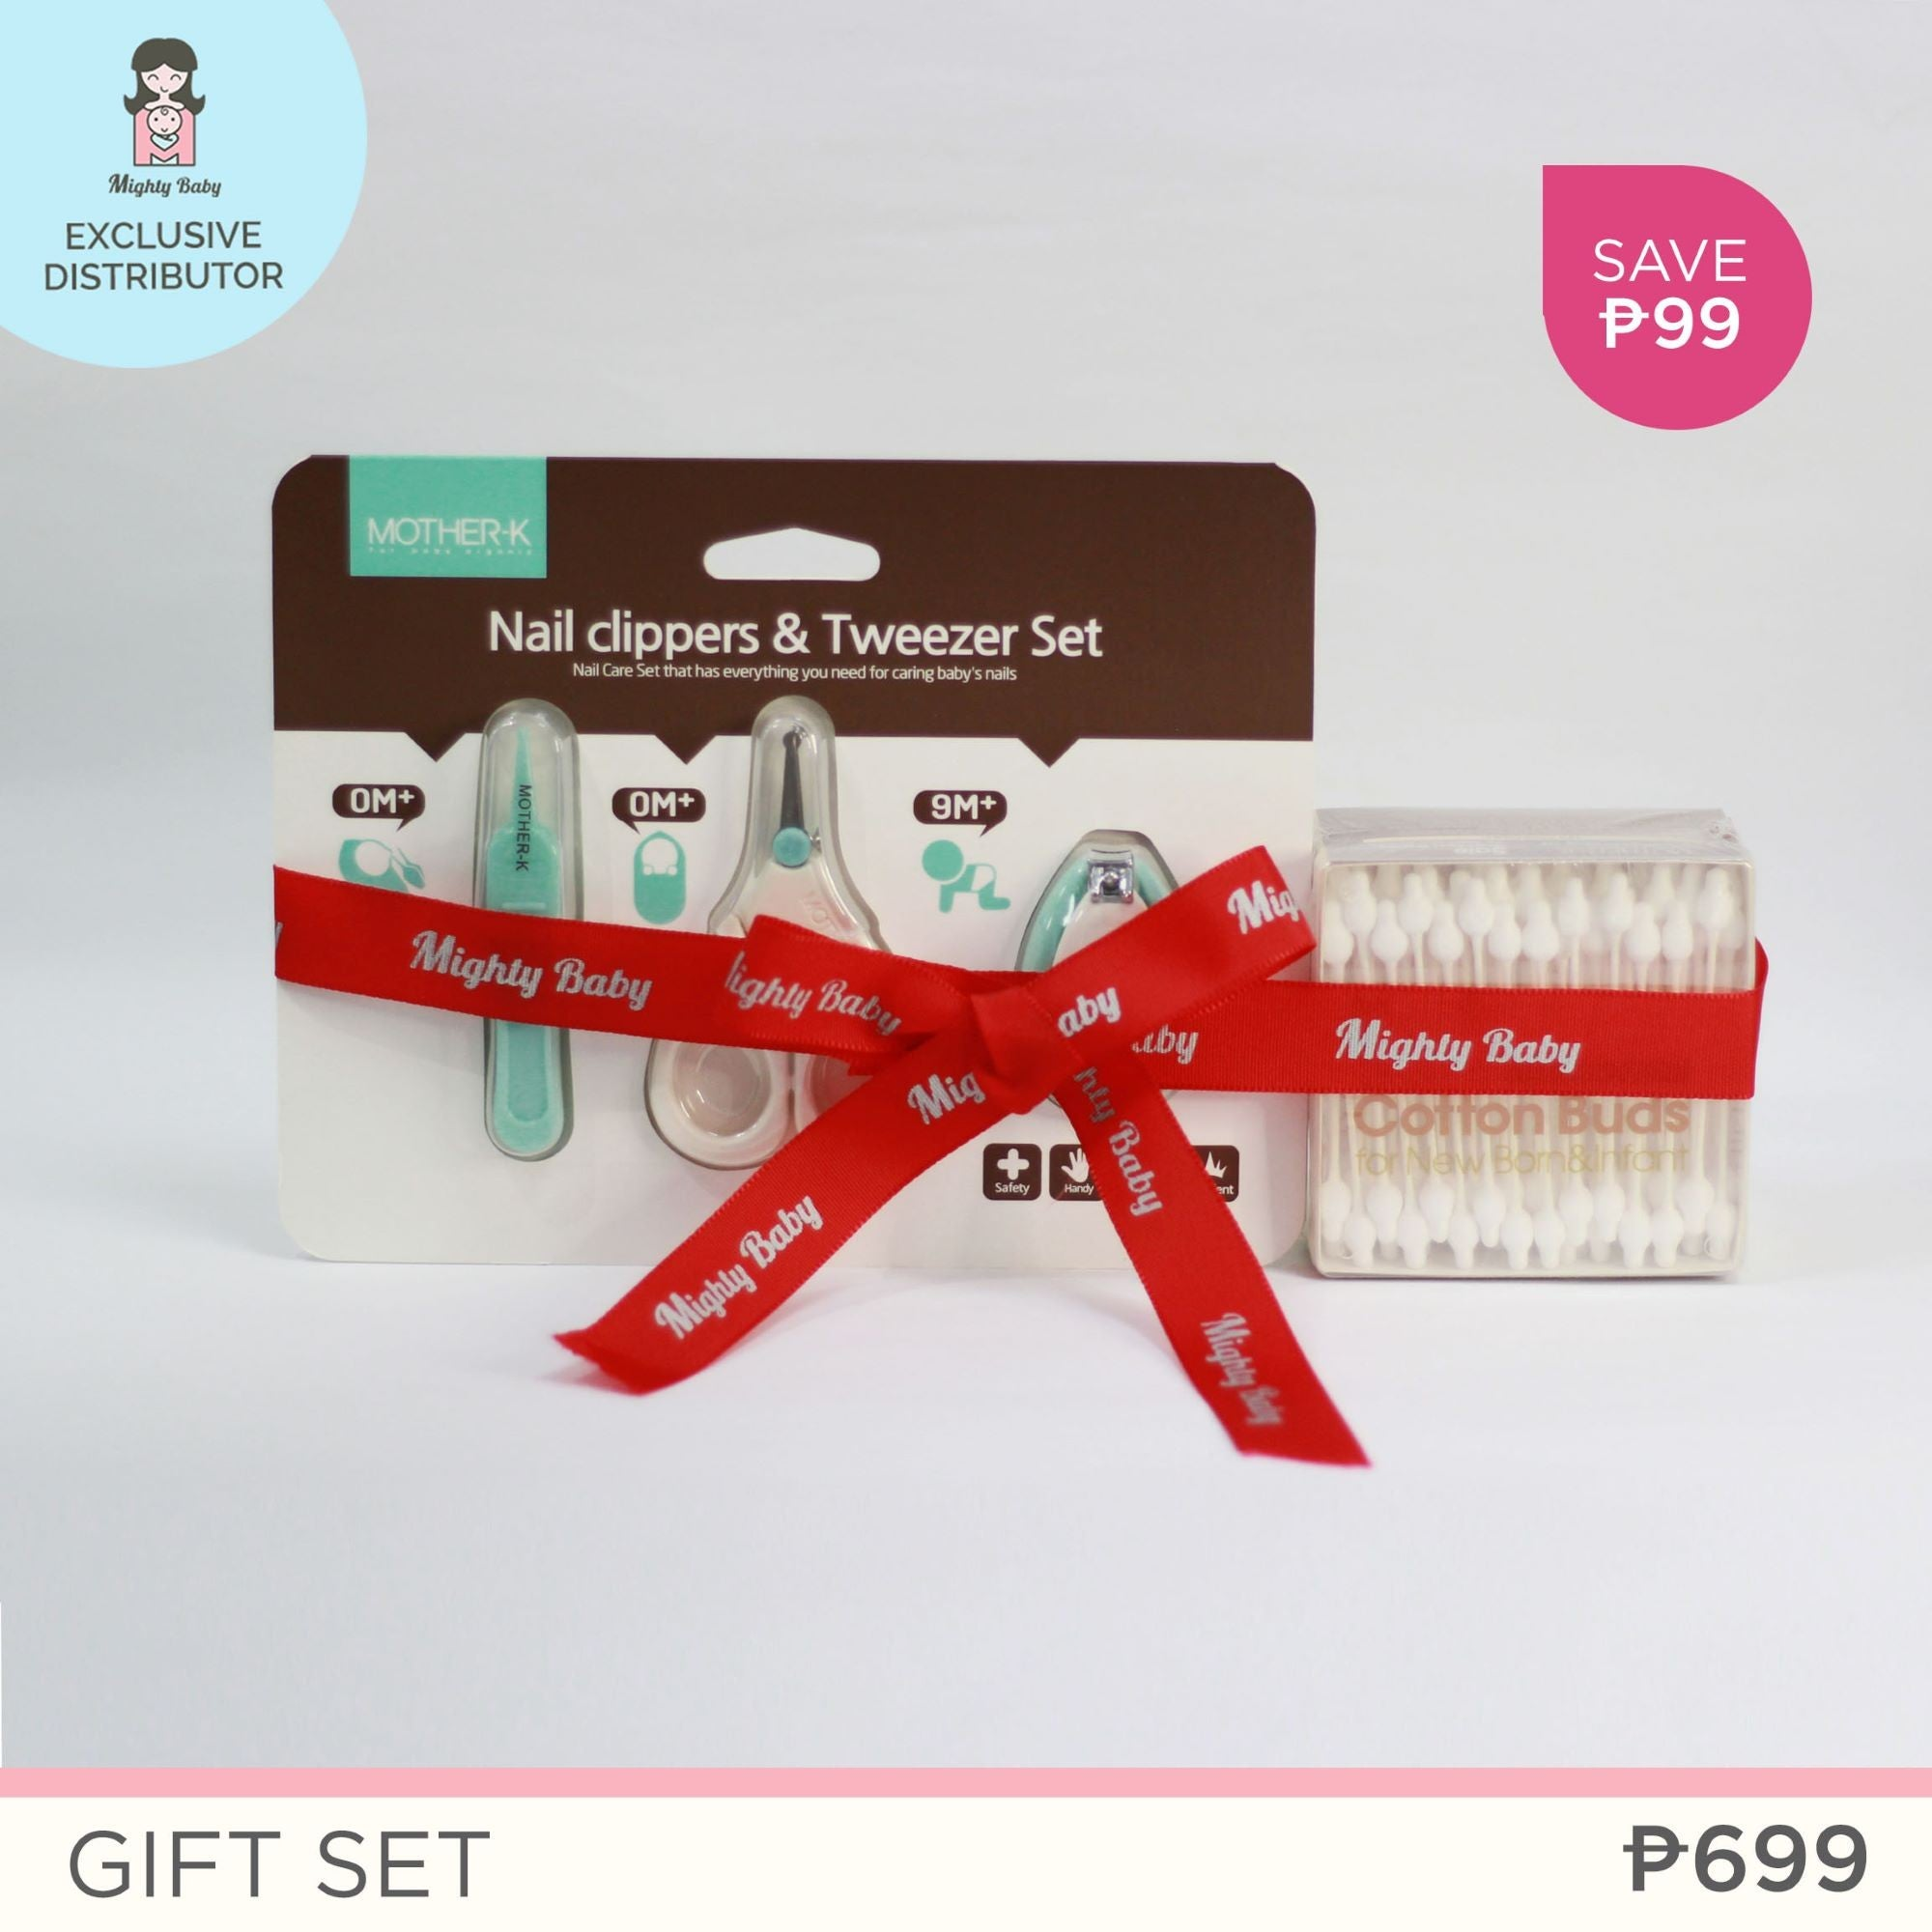 Mother-K Hygiene Set - Mighty Baby PH